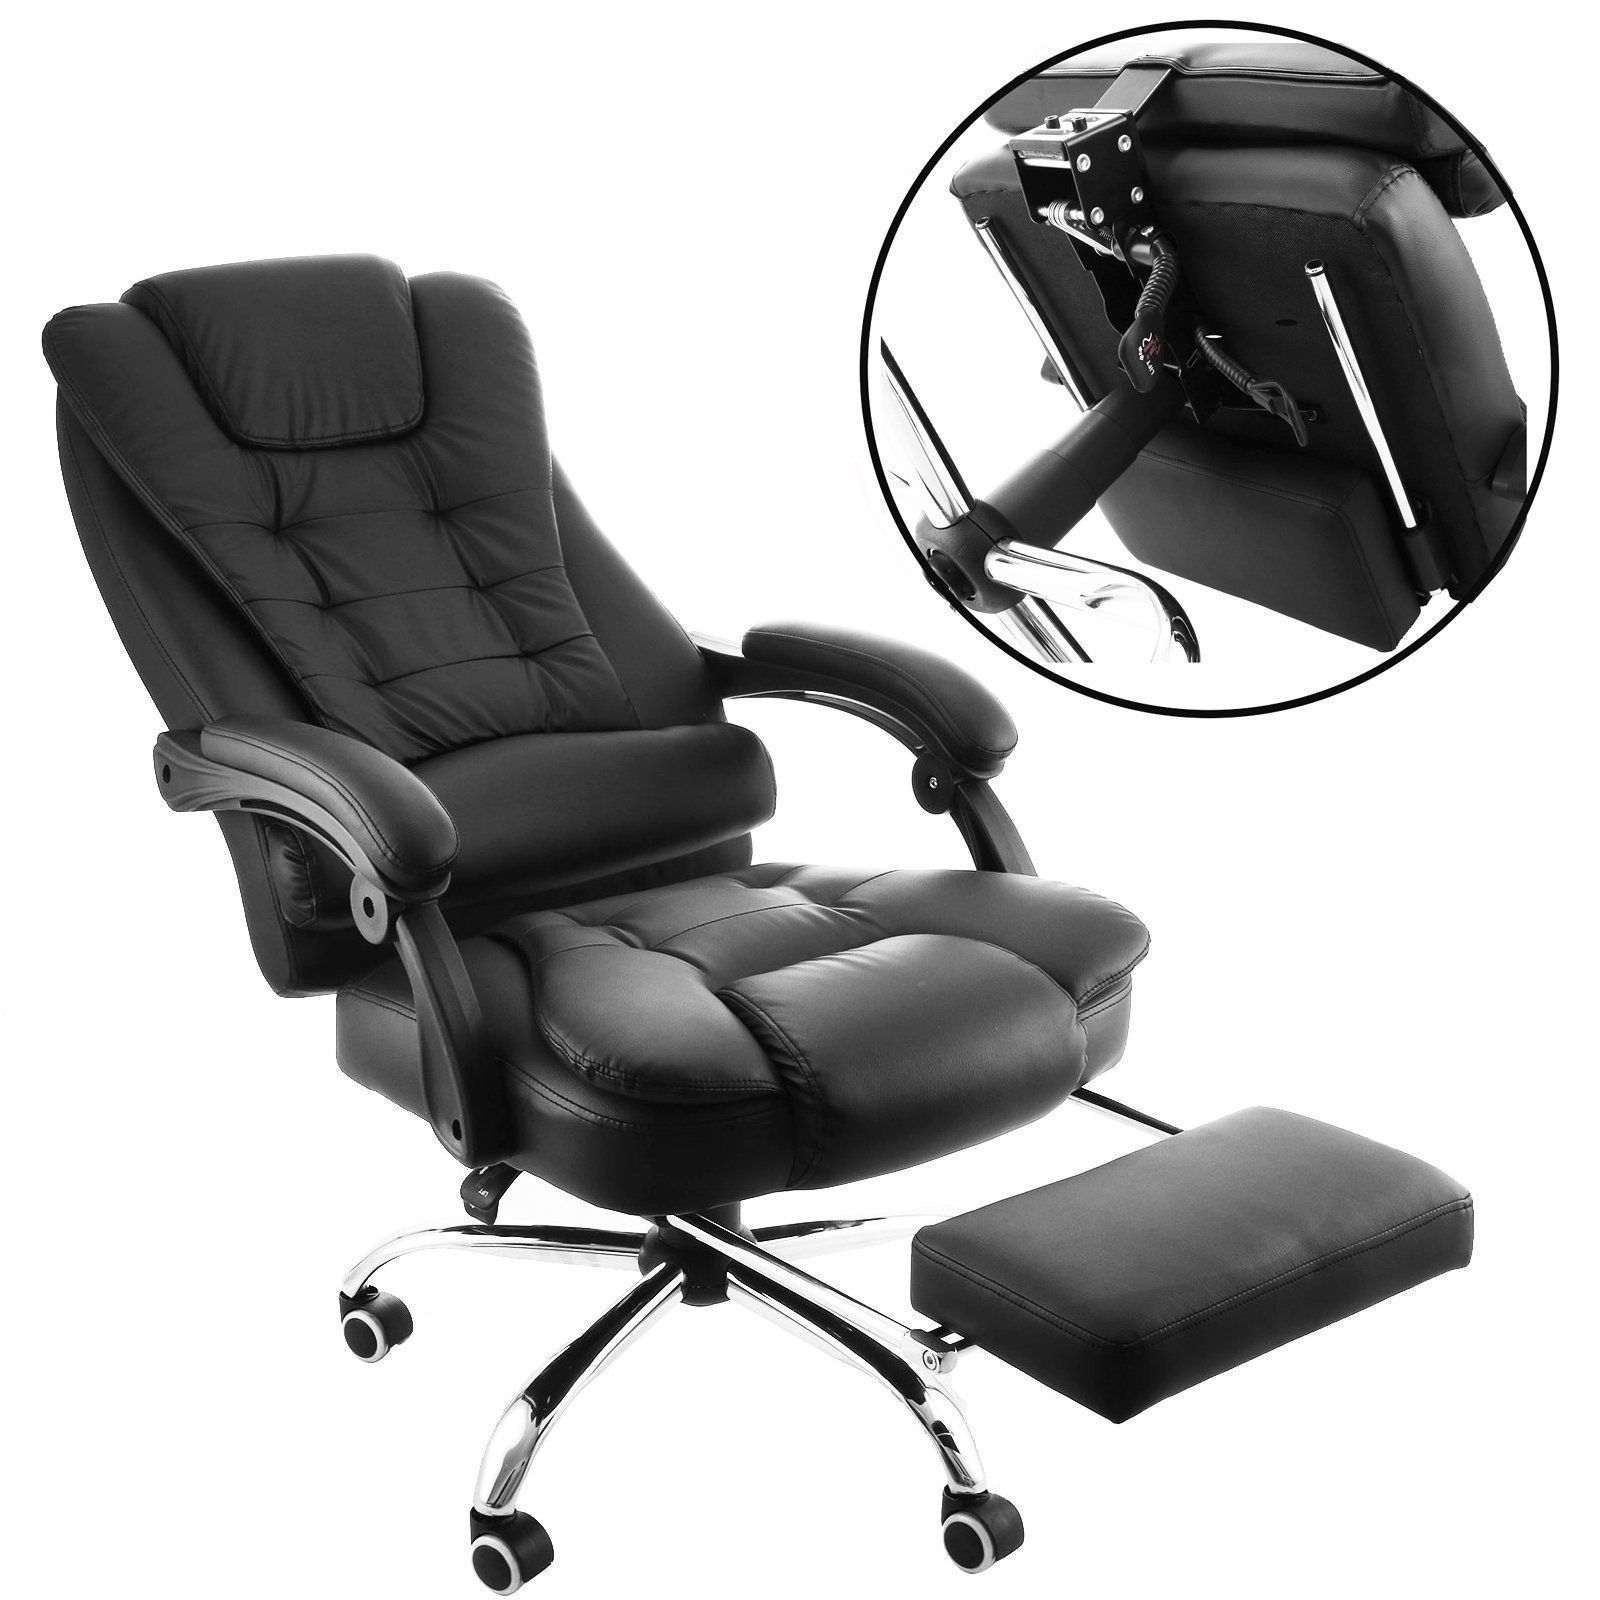 50+ Ergonomic Reclining Office Chair   Best Way To Paint Wood Furniture  Check More At